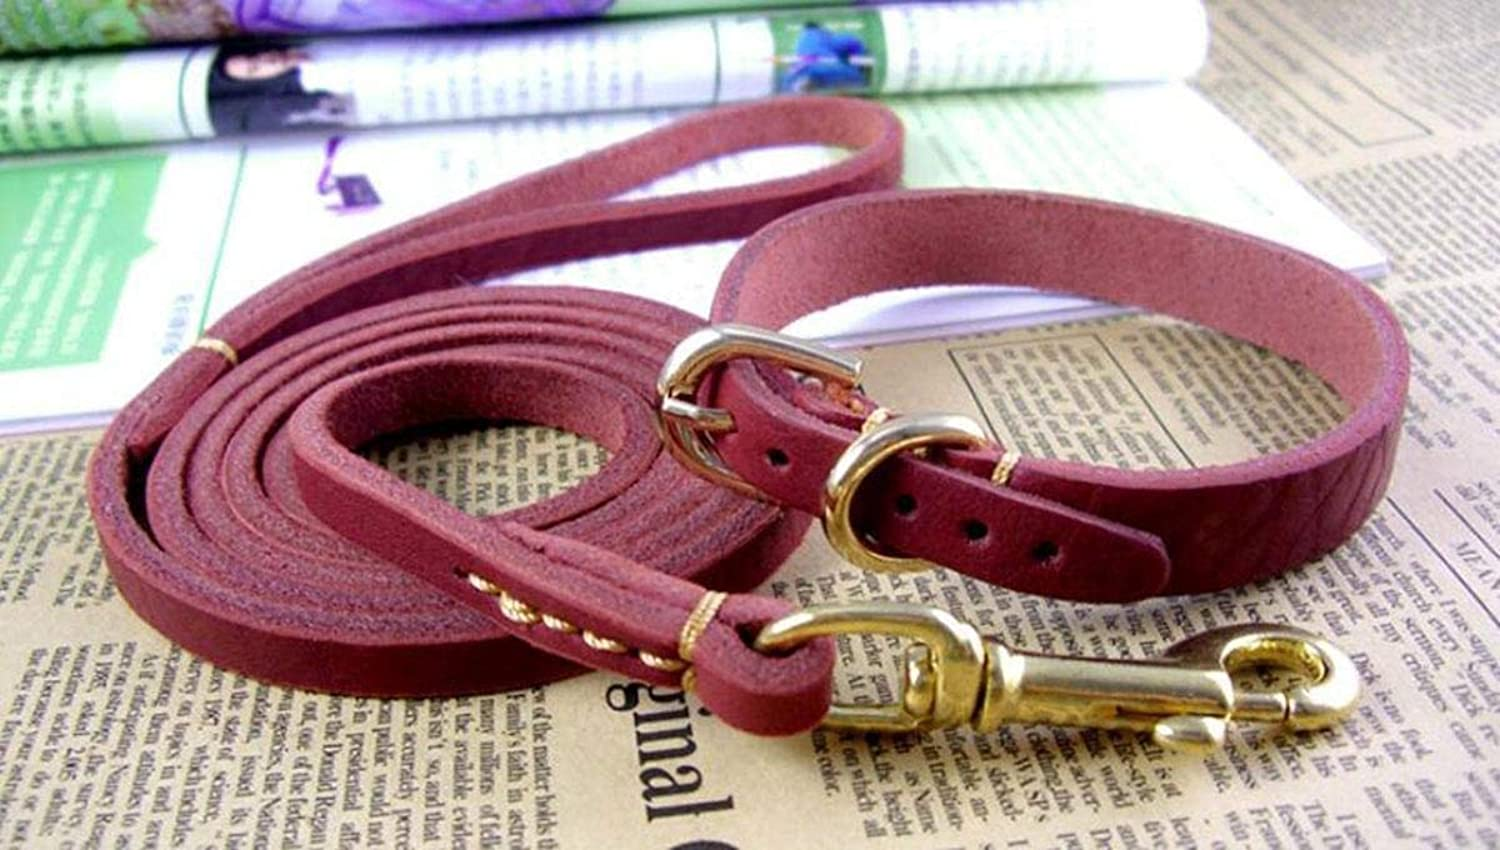 Dog Lead Dog Lead Pet Traction Rope Leather Traction Belt with Collar Soft and Durable Dog Chain, Dark Brown, s Dog Training Leash (color   Wine red, Size   M)